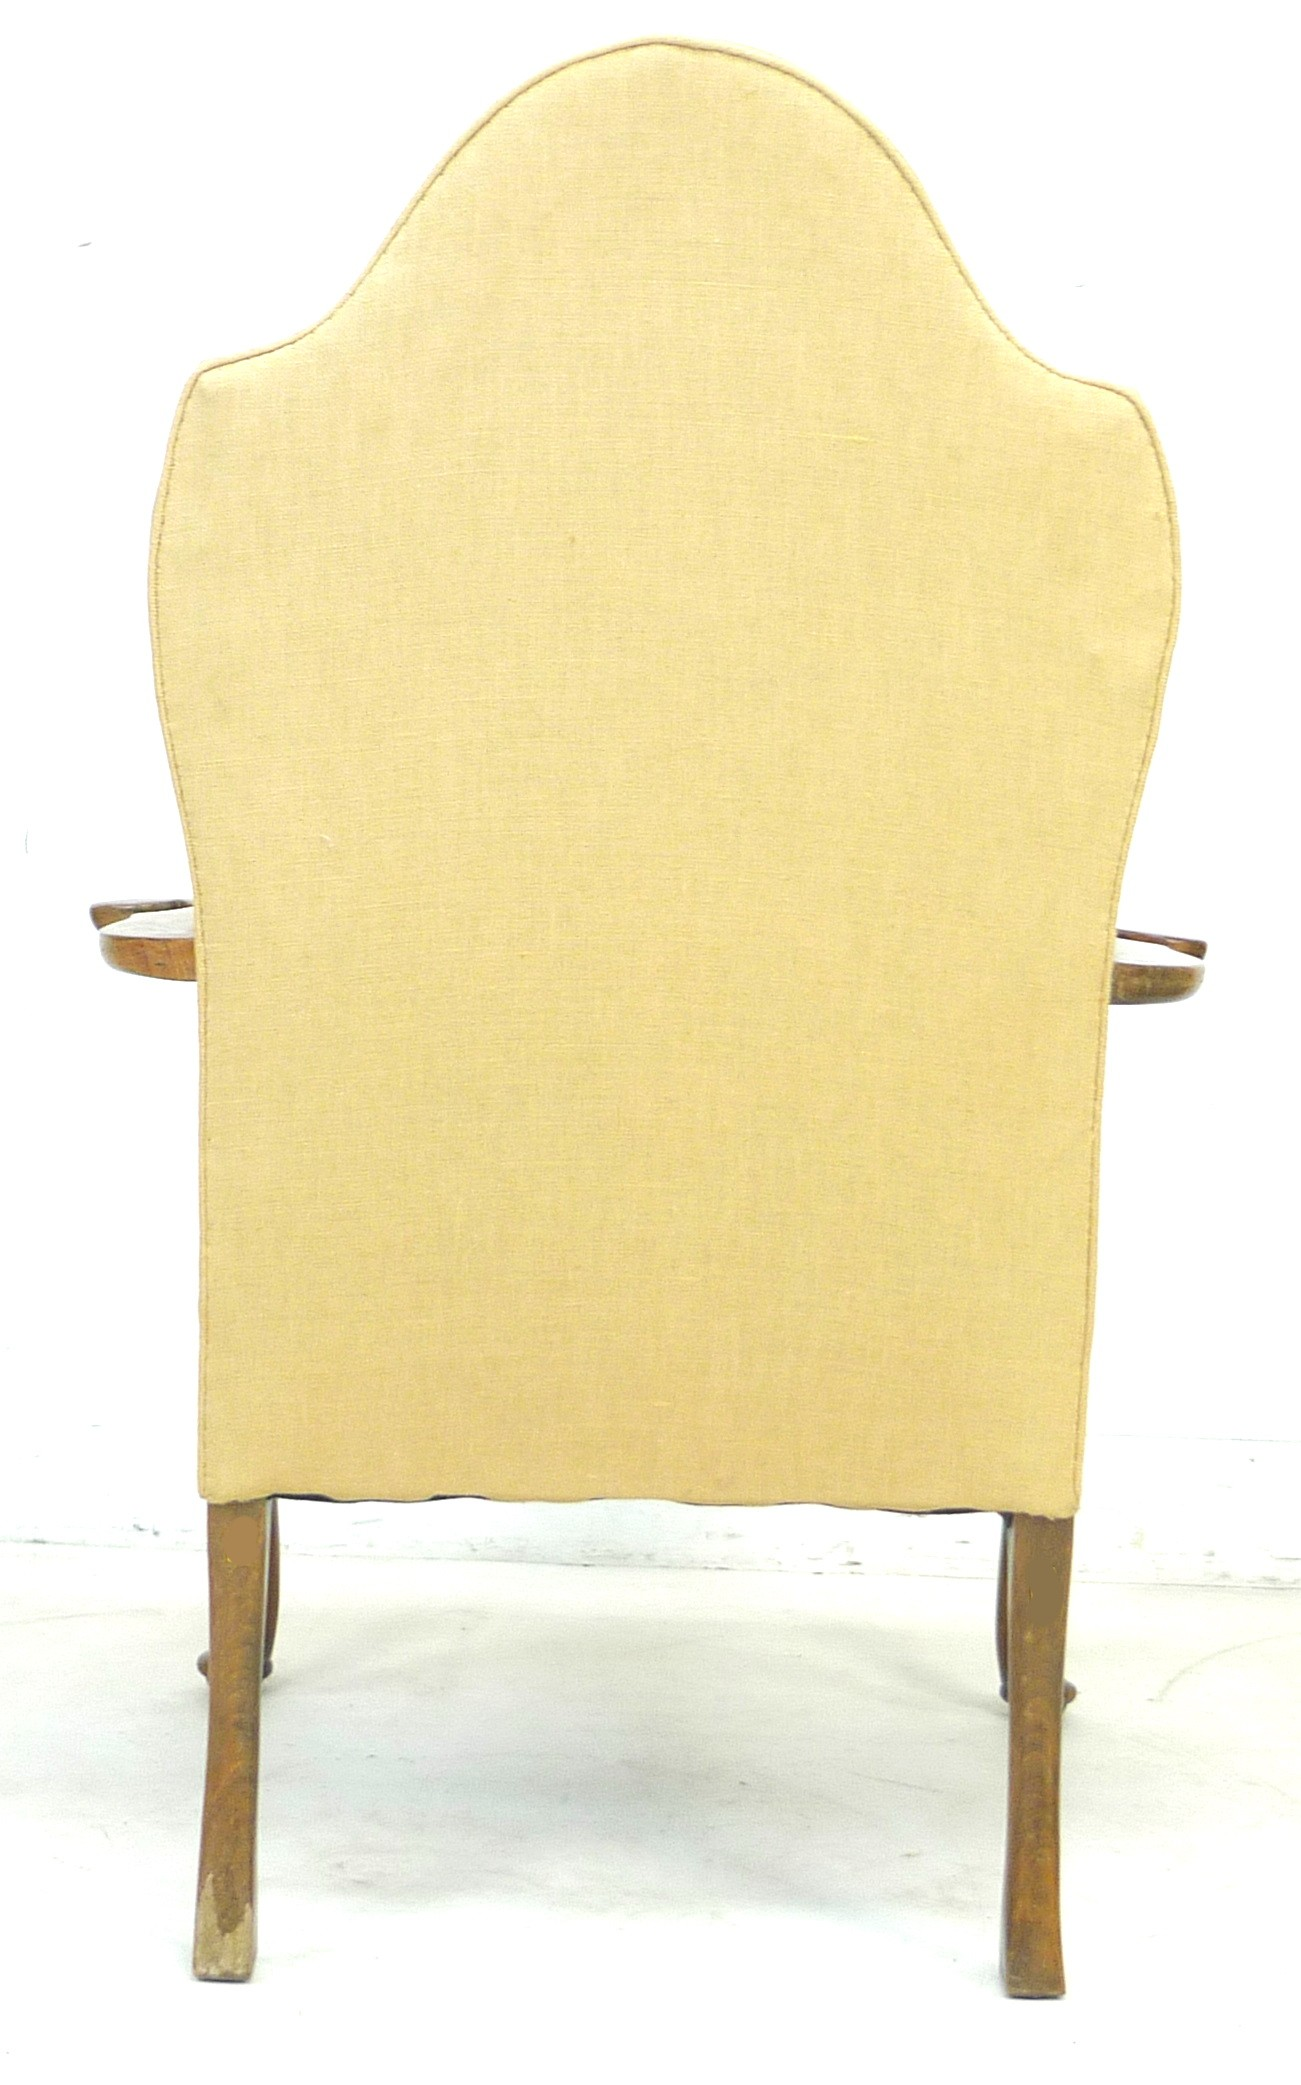 An Edwardian mahogany open armchair, in Queen Anne style, upholstered in cream foliate fabric, 72 by - Image 4 of 4